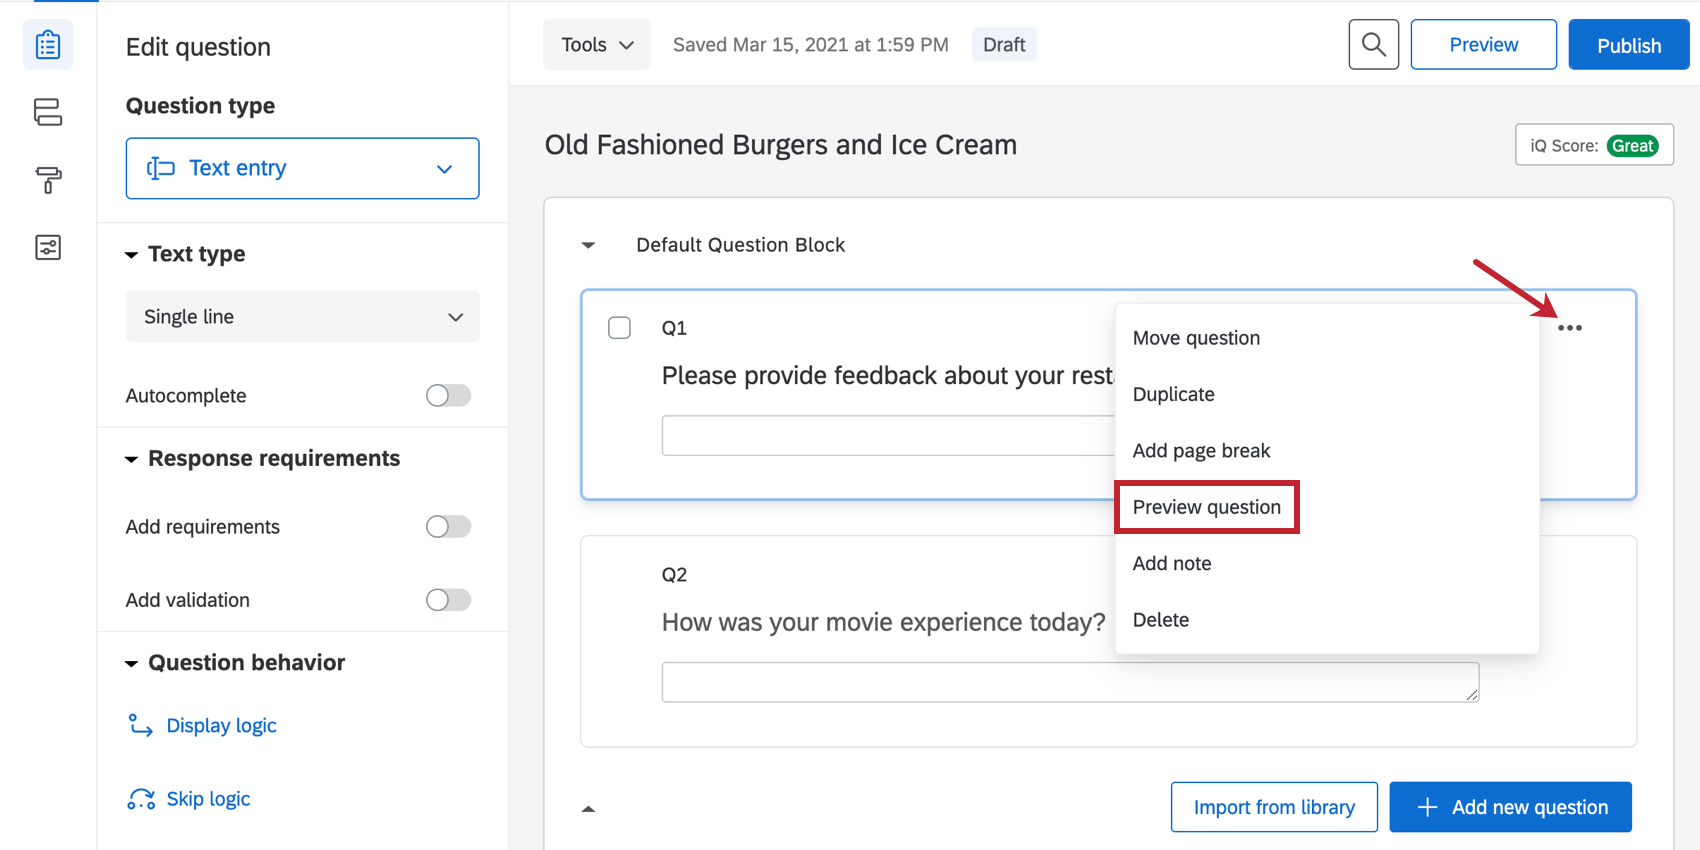 Preview question option from upper-right of question